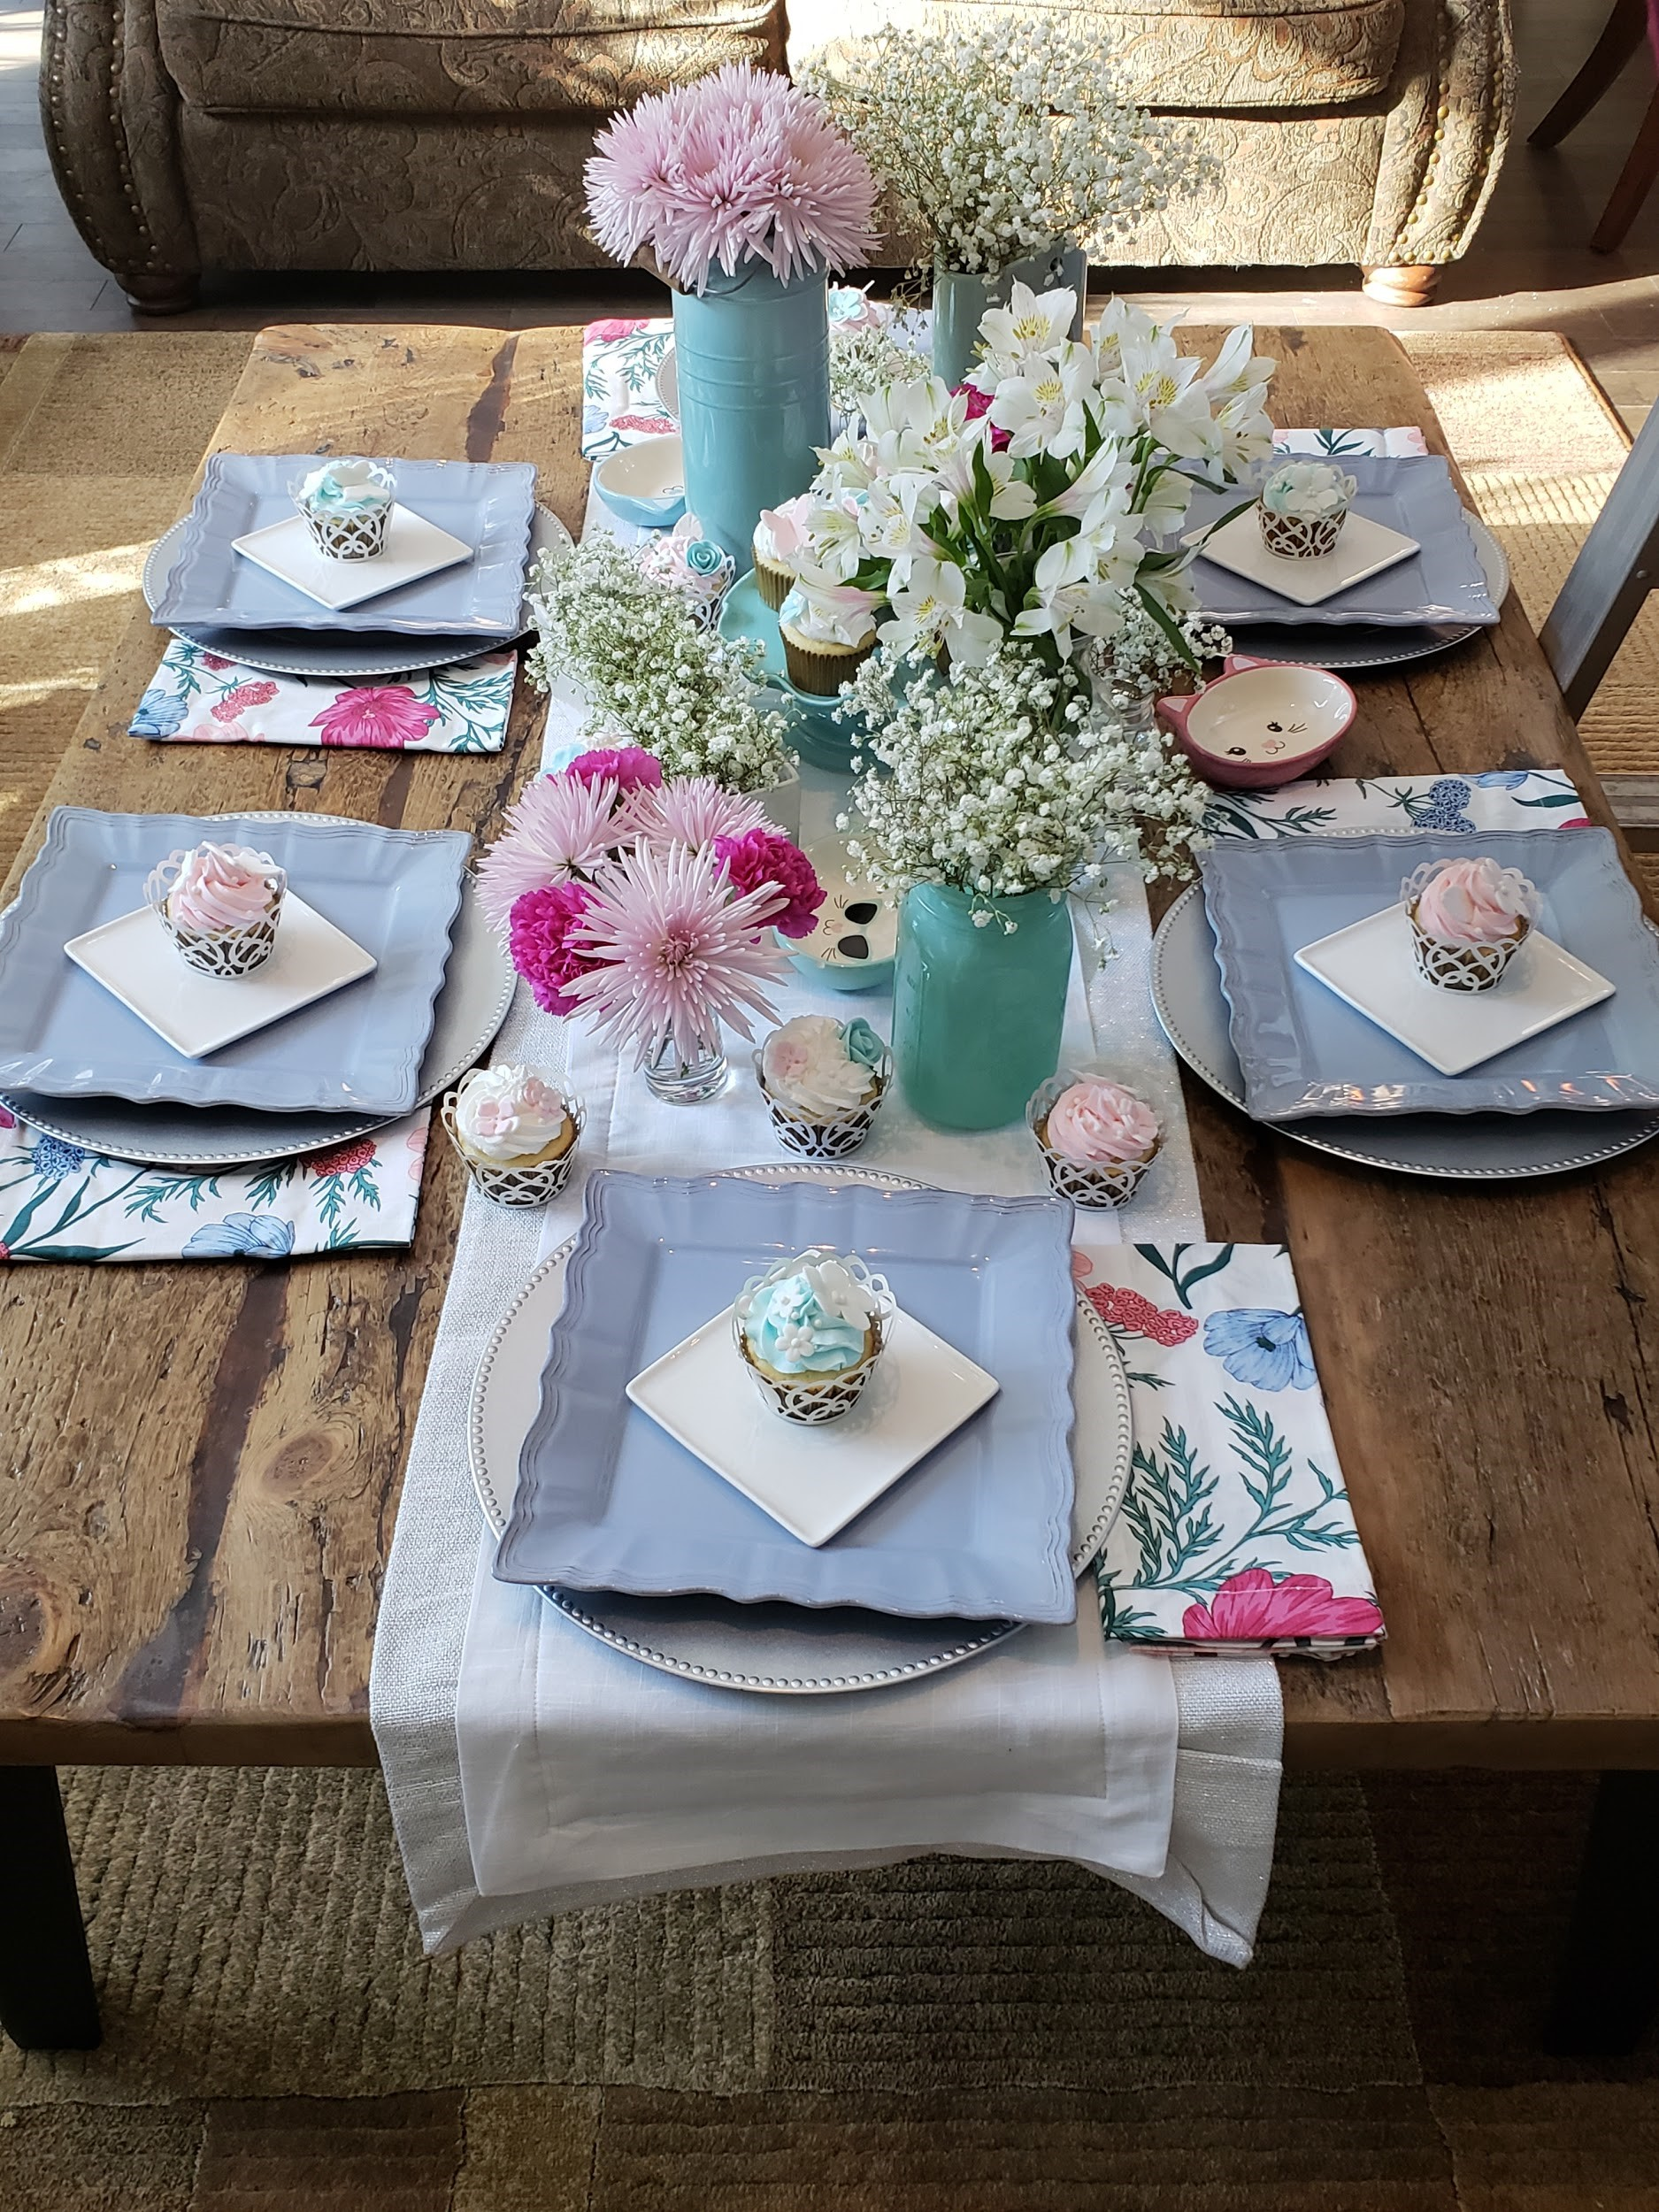 2020 National cupcake Day table setting